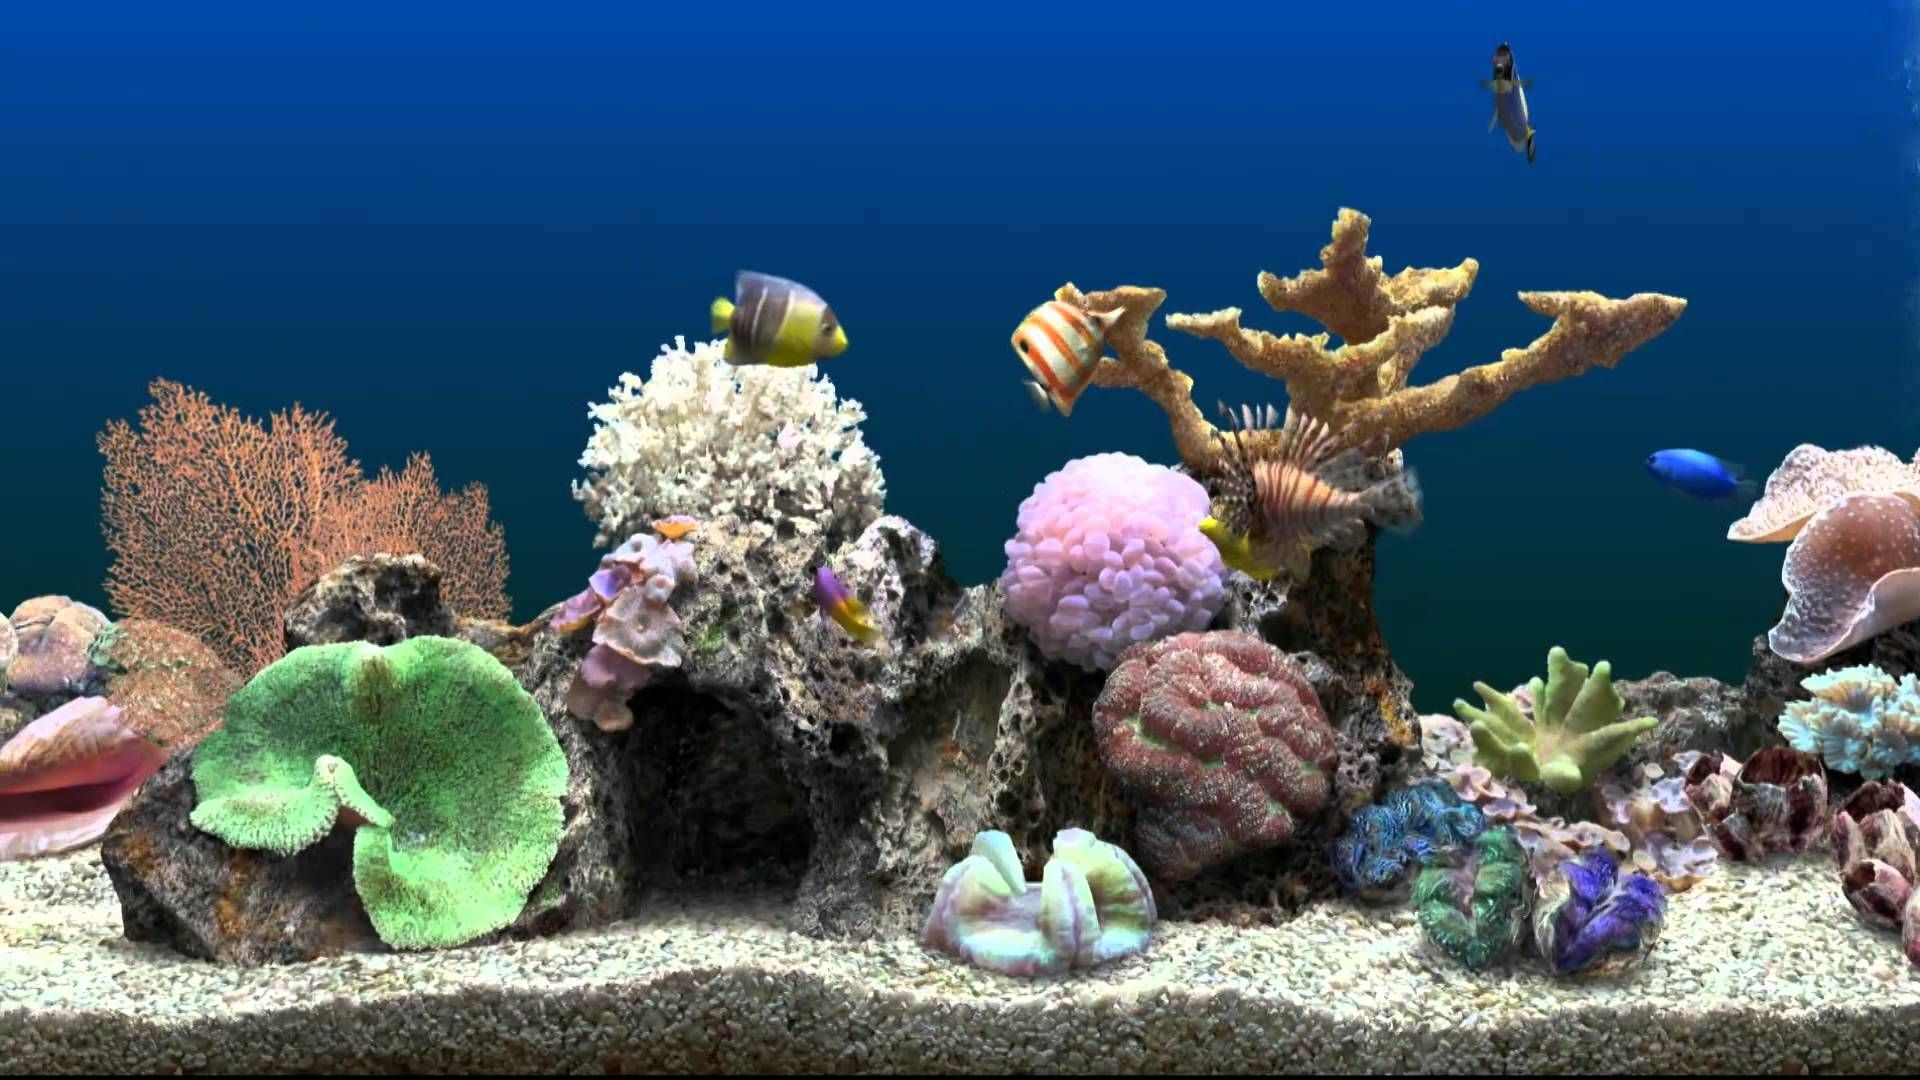 Kick back and relax while watching this peaceful salt water virtual